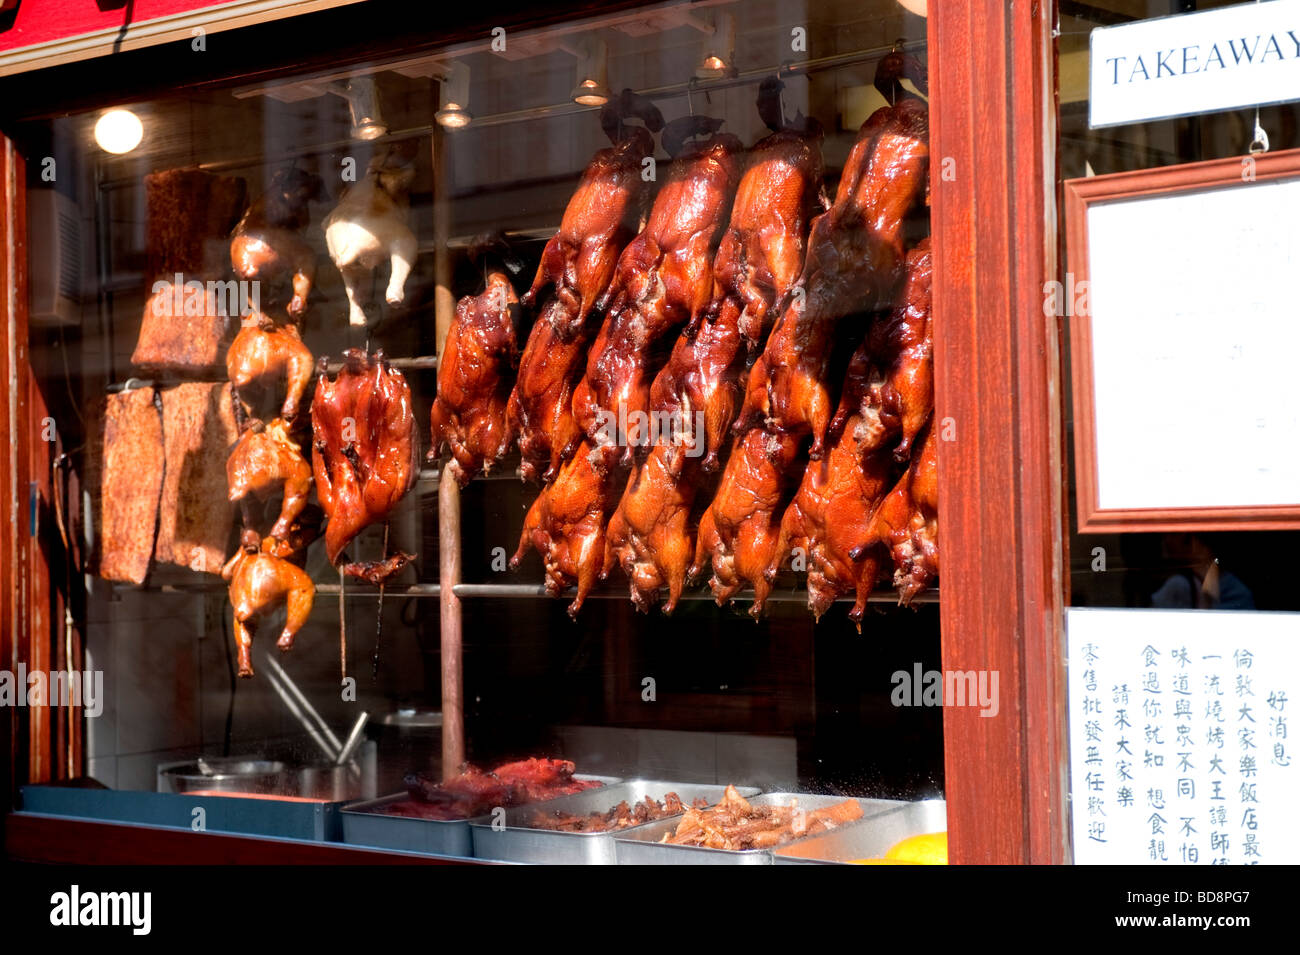 A crispy duck cooking in a Chinese Restaurant window. - Stock Image